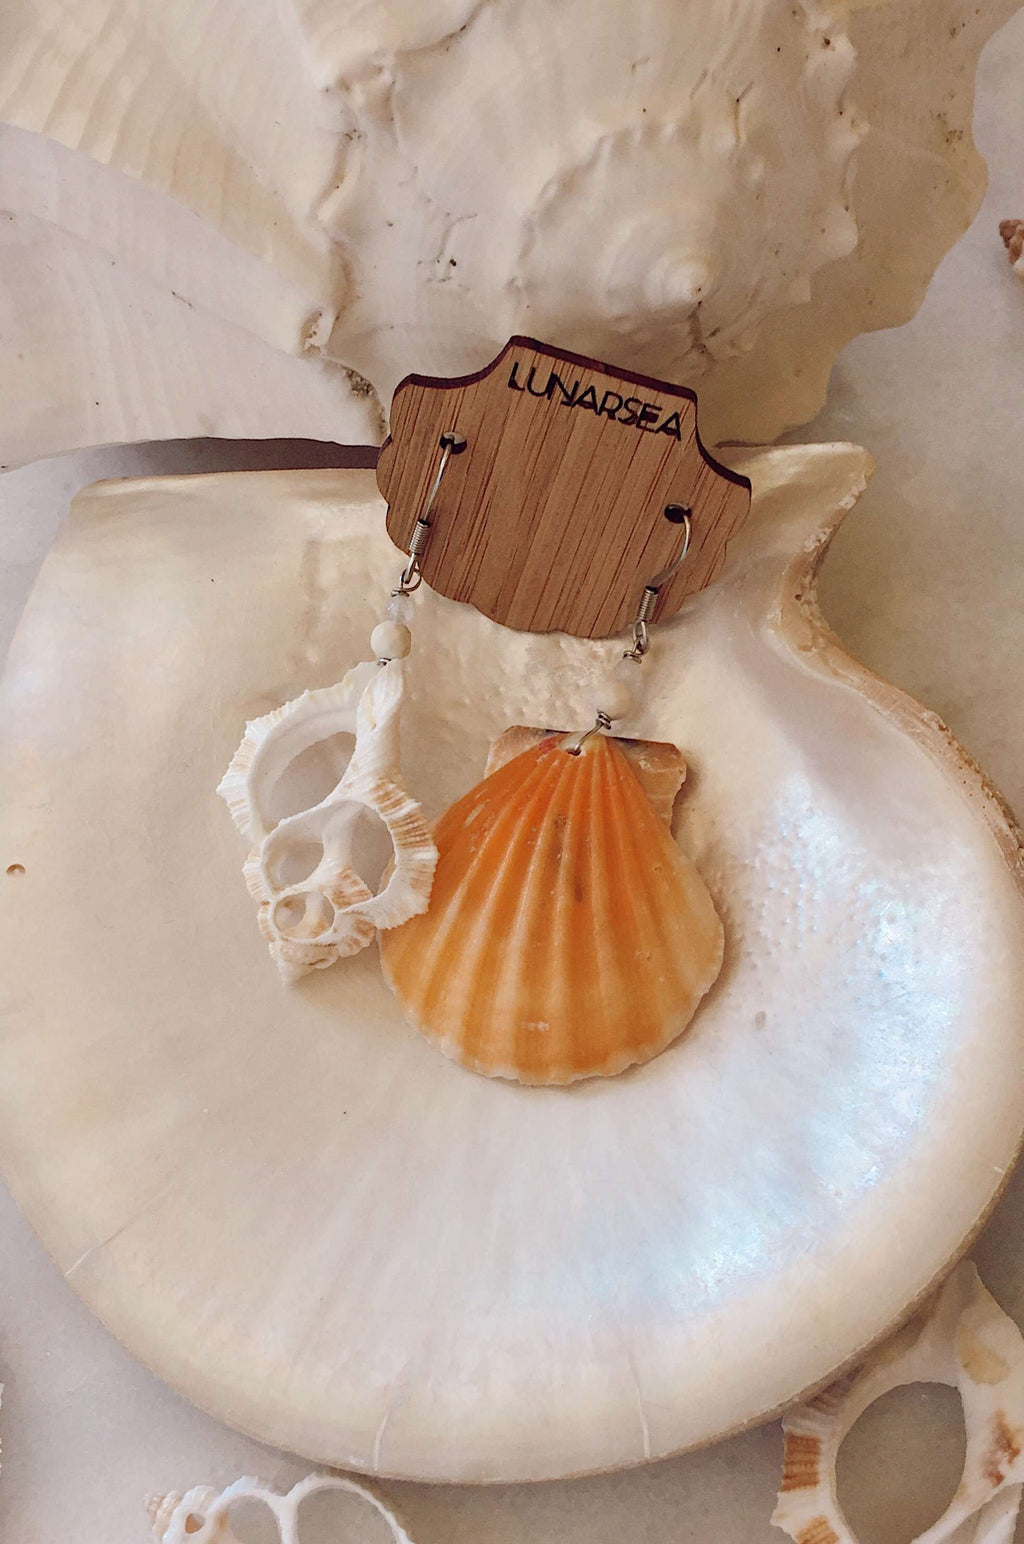 Castaway Shell Earrings, Earrings with Orange Scallop + White Slice by Lunarsea Designs